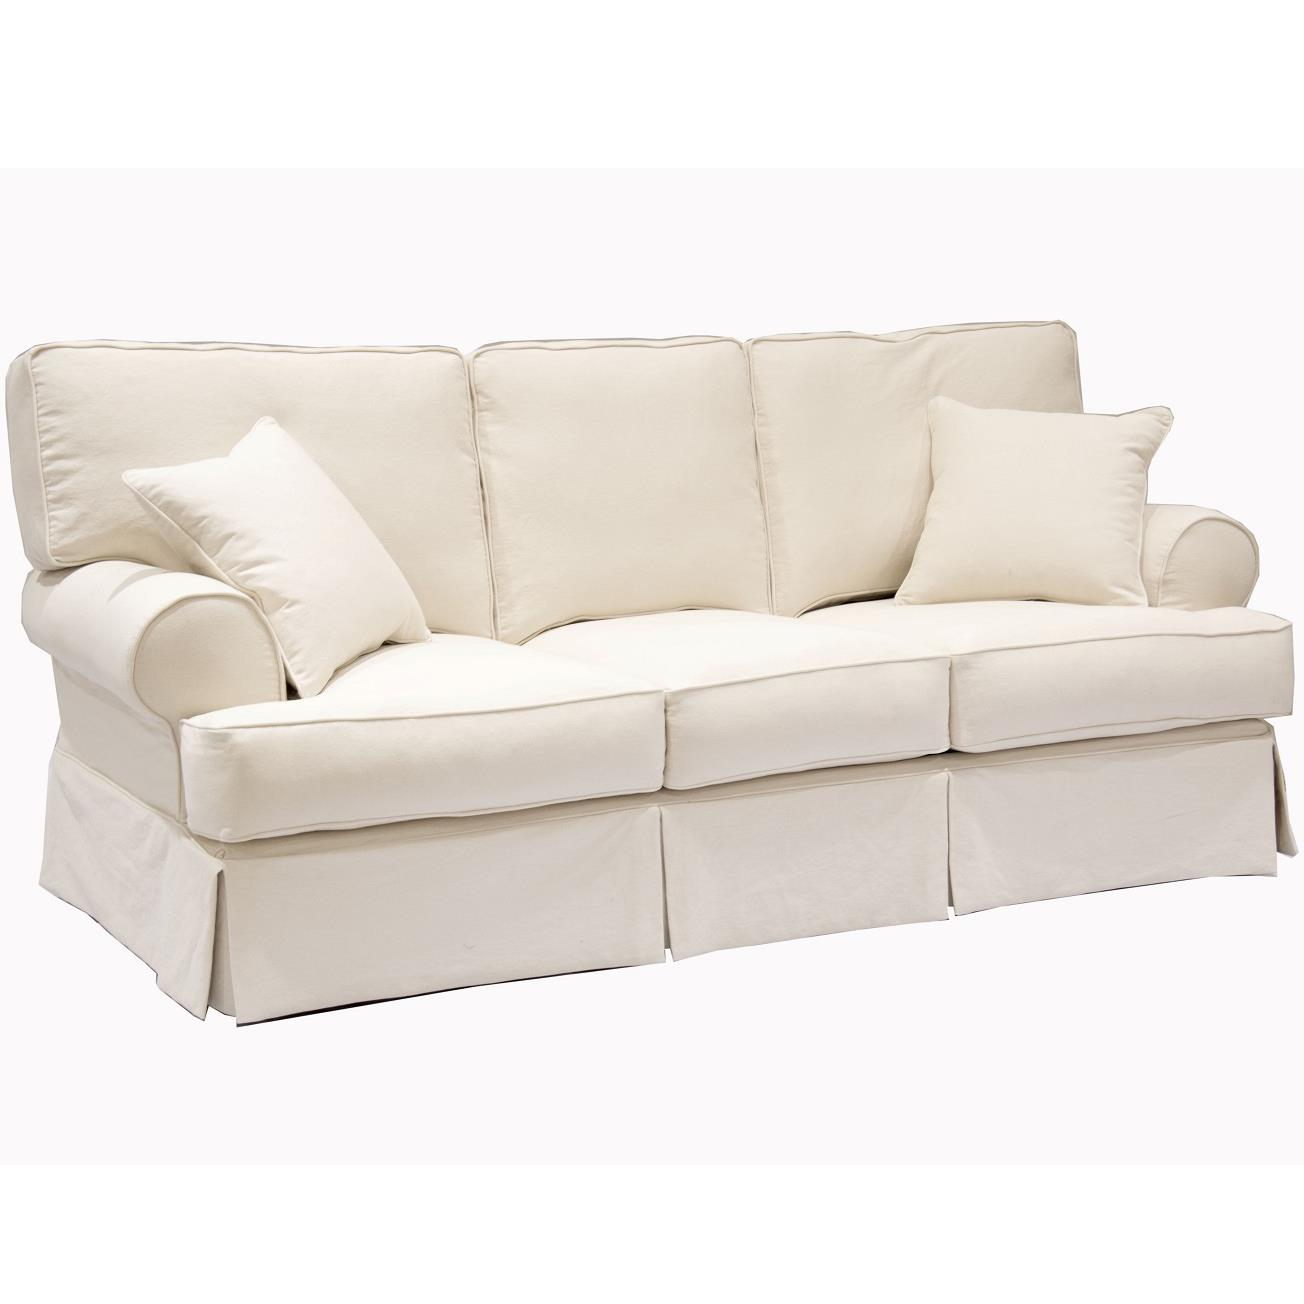 Synergy home furnishings 669 casual sofa with rolled sock for Casual couch